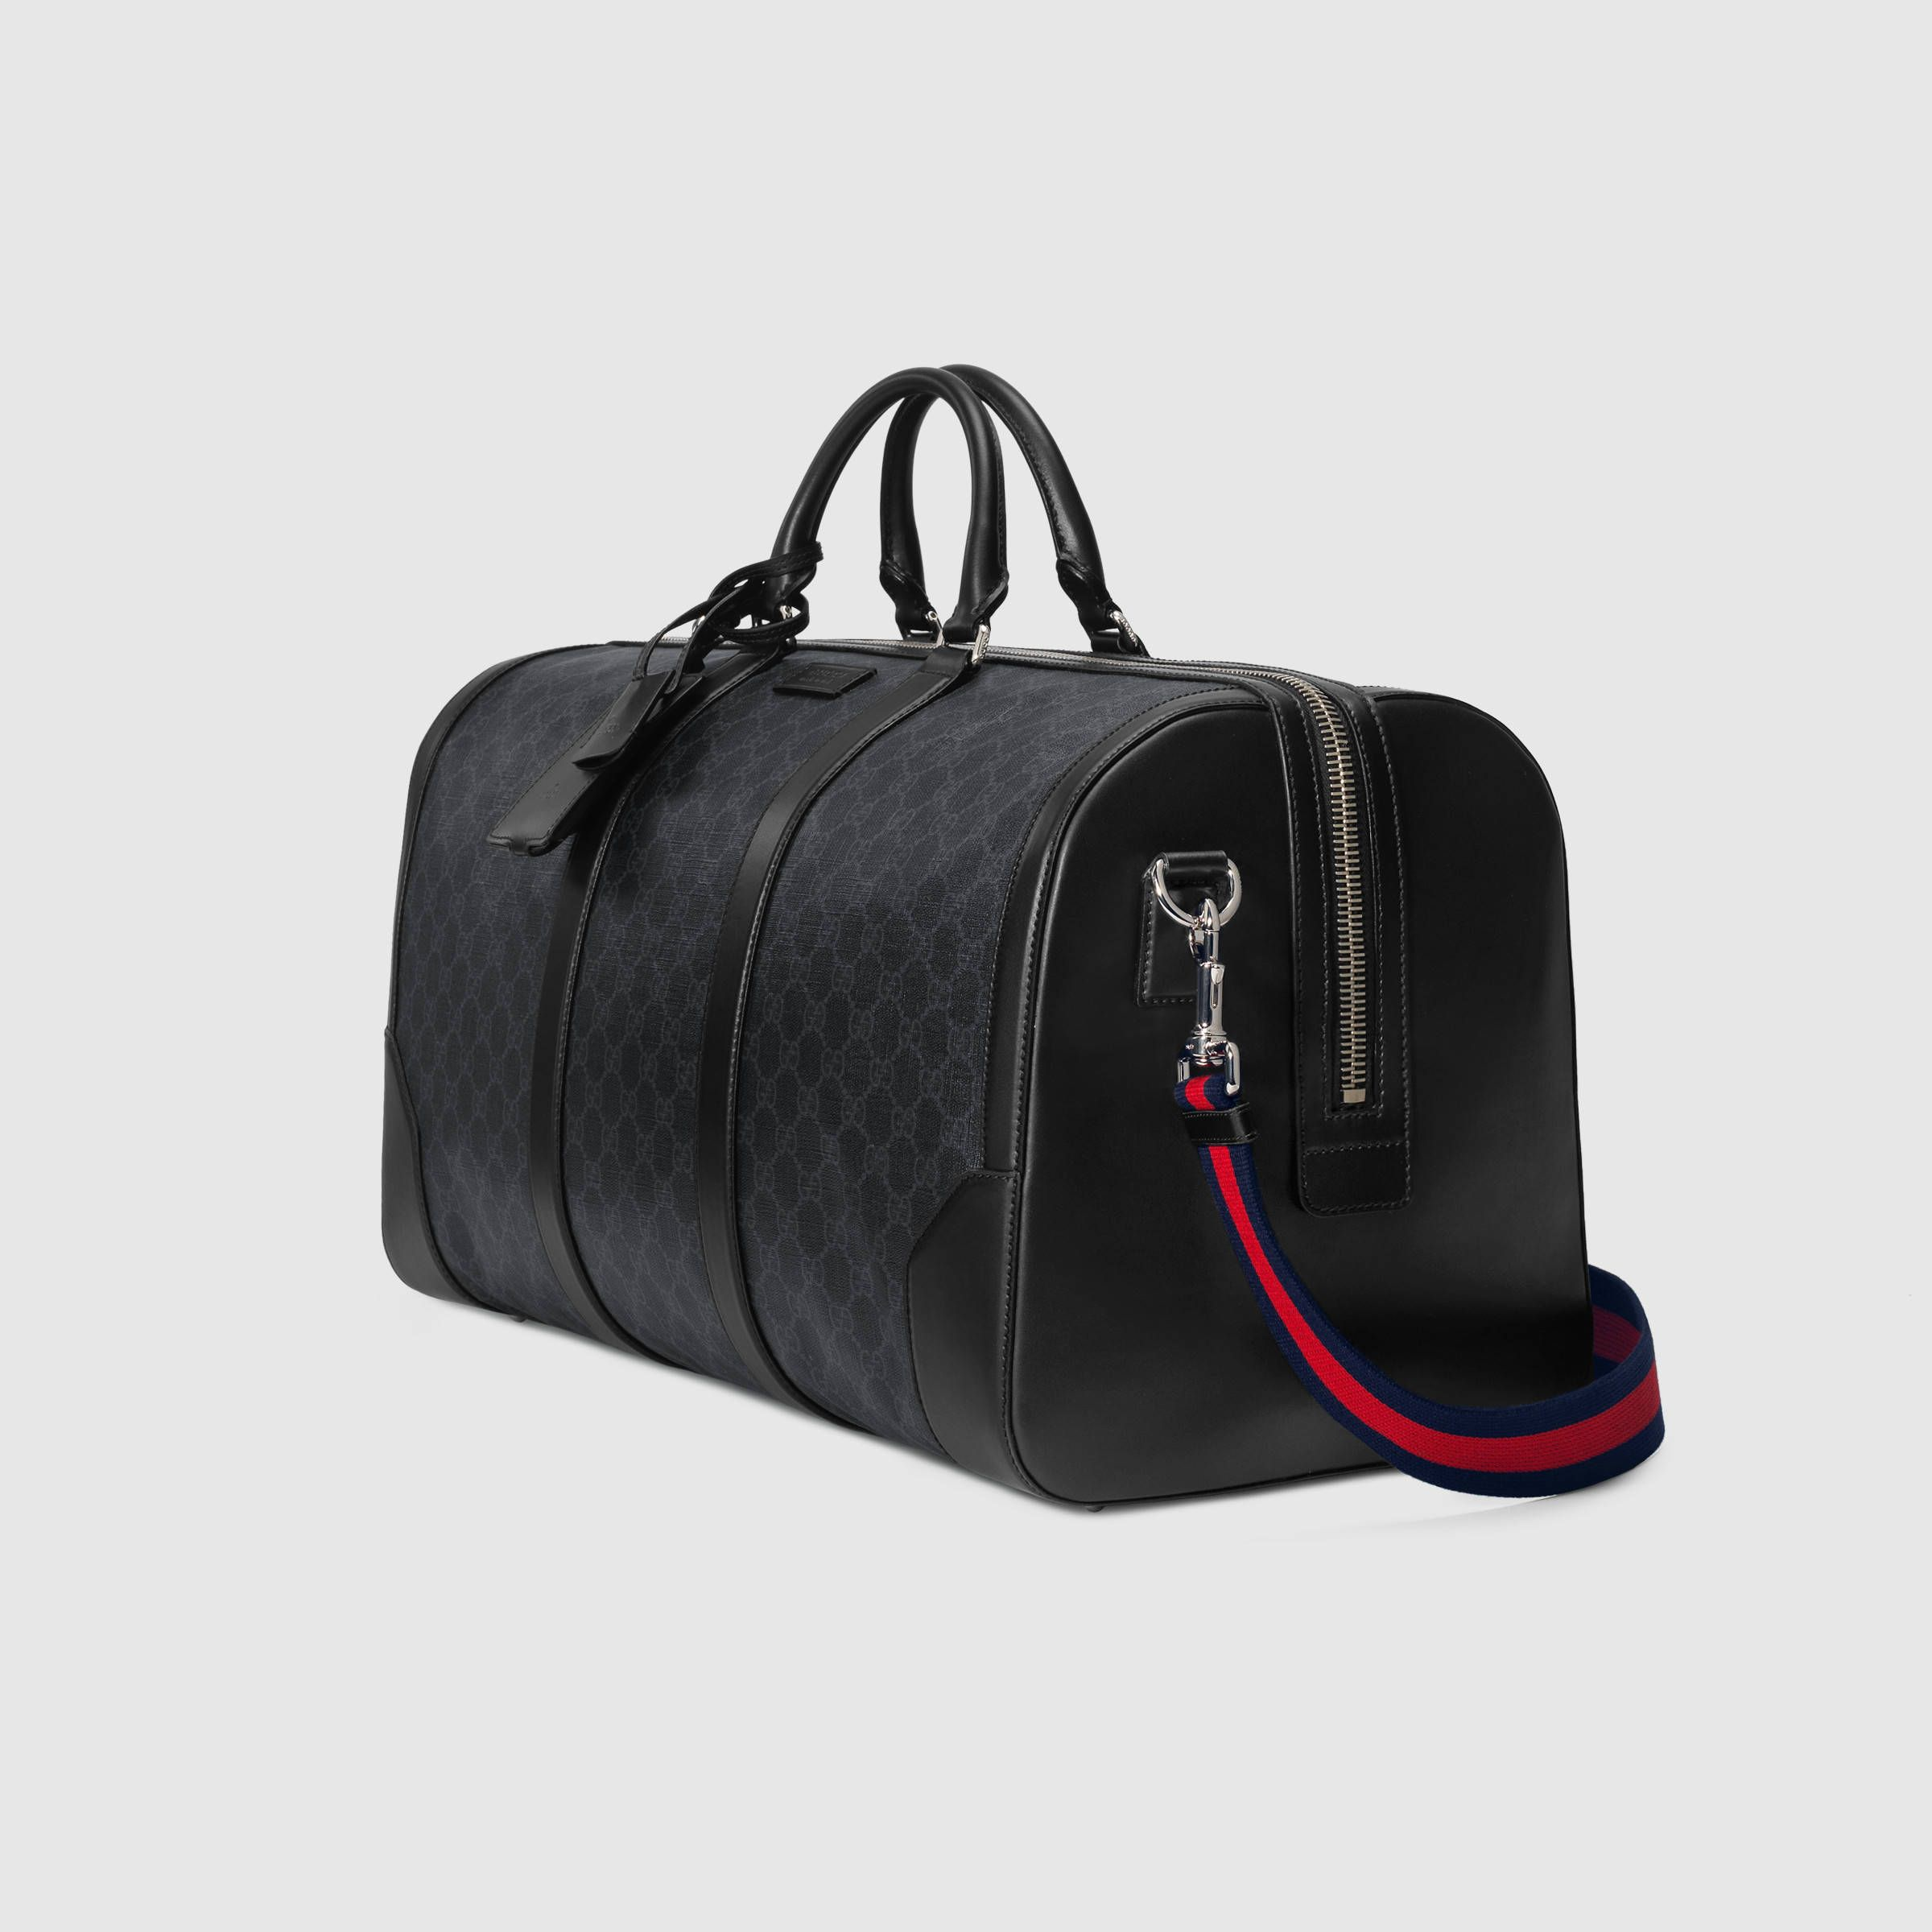 68fa903cc502b4 Soft GG Supreme carry-on duffle | M. Bag Travel | Gucci, Bags ...